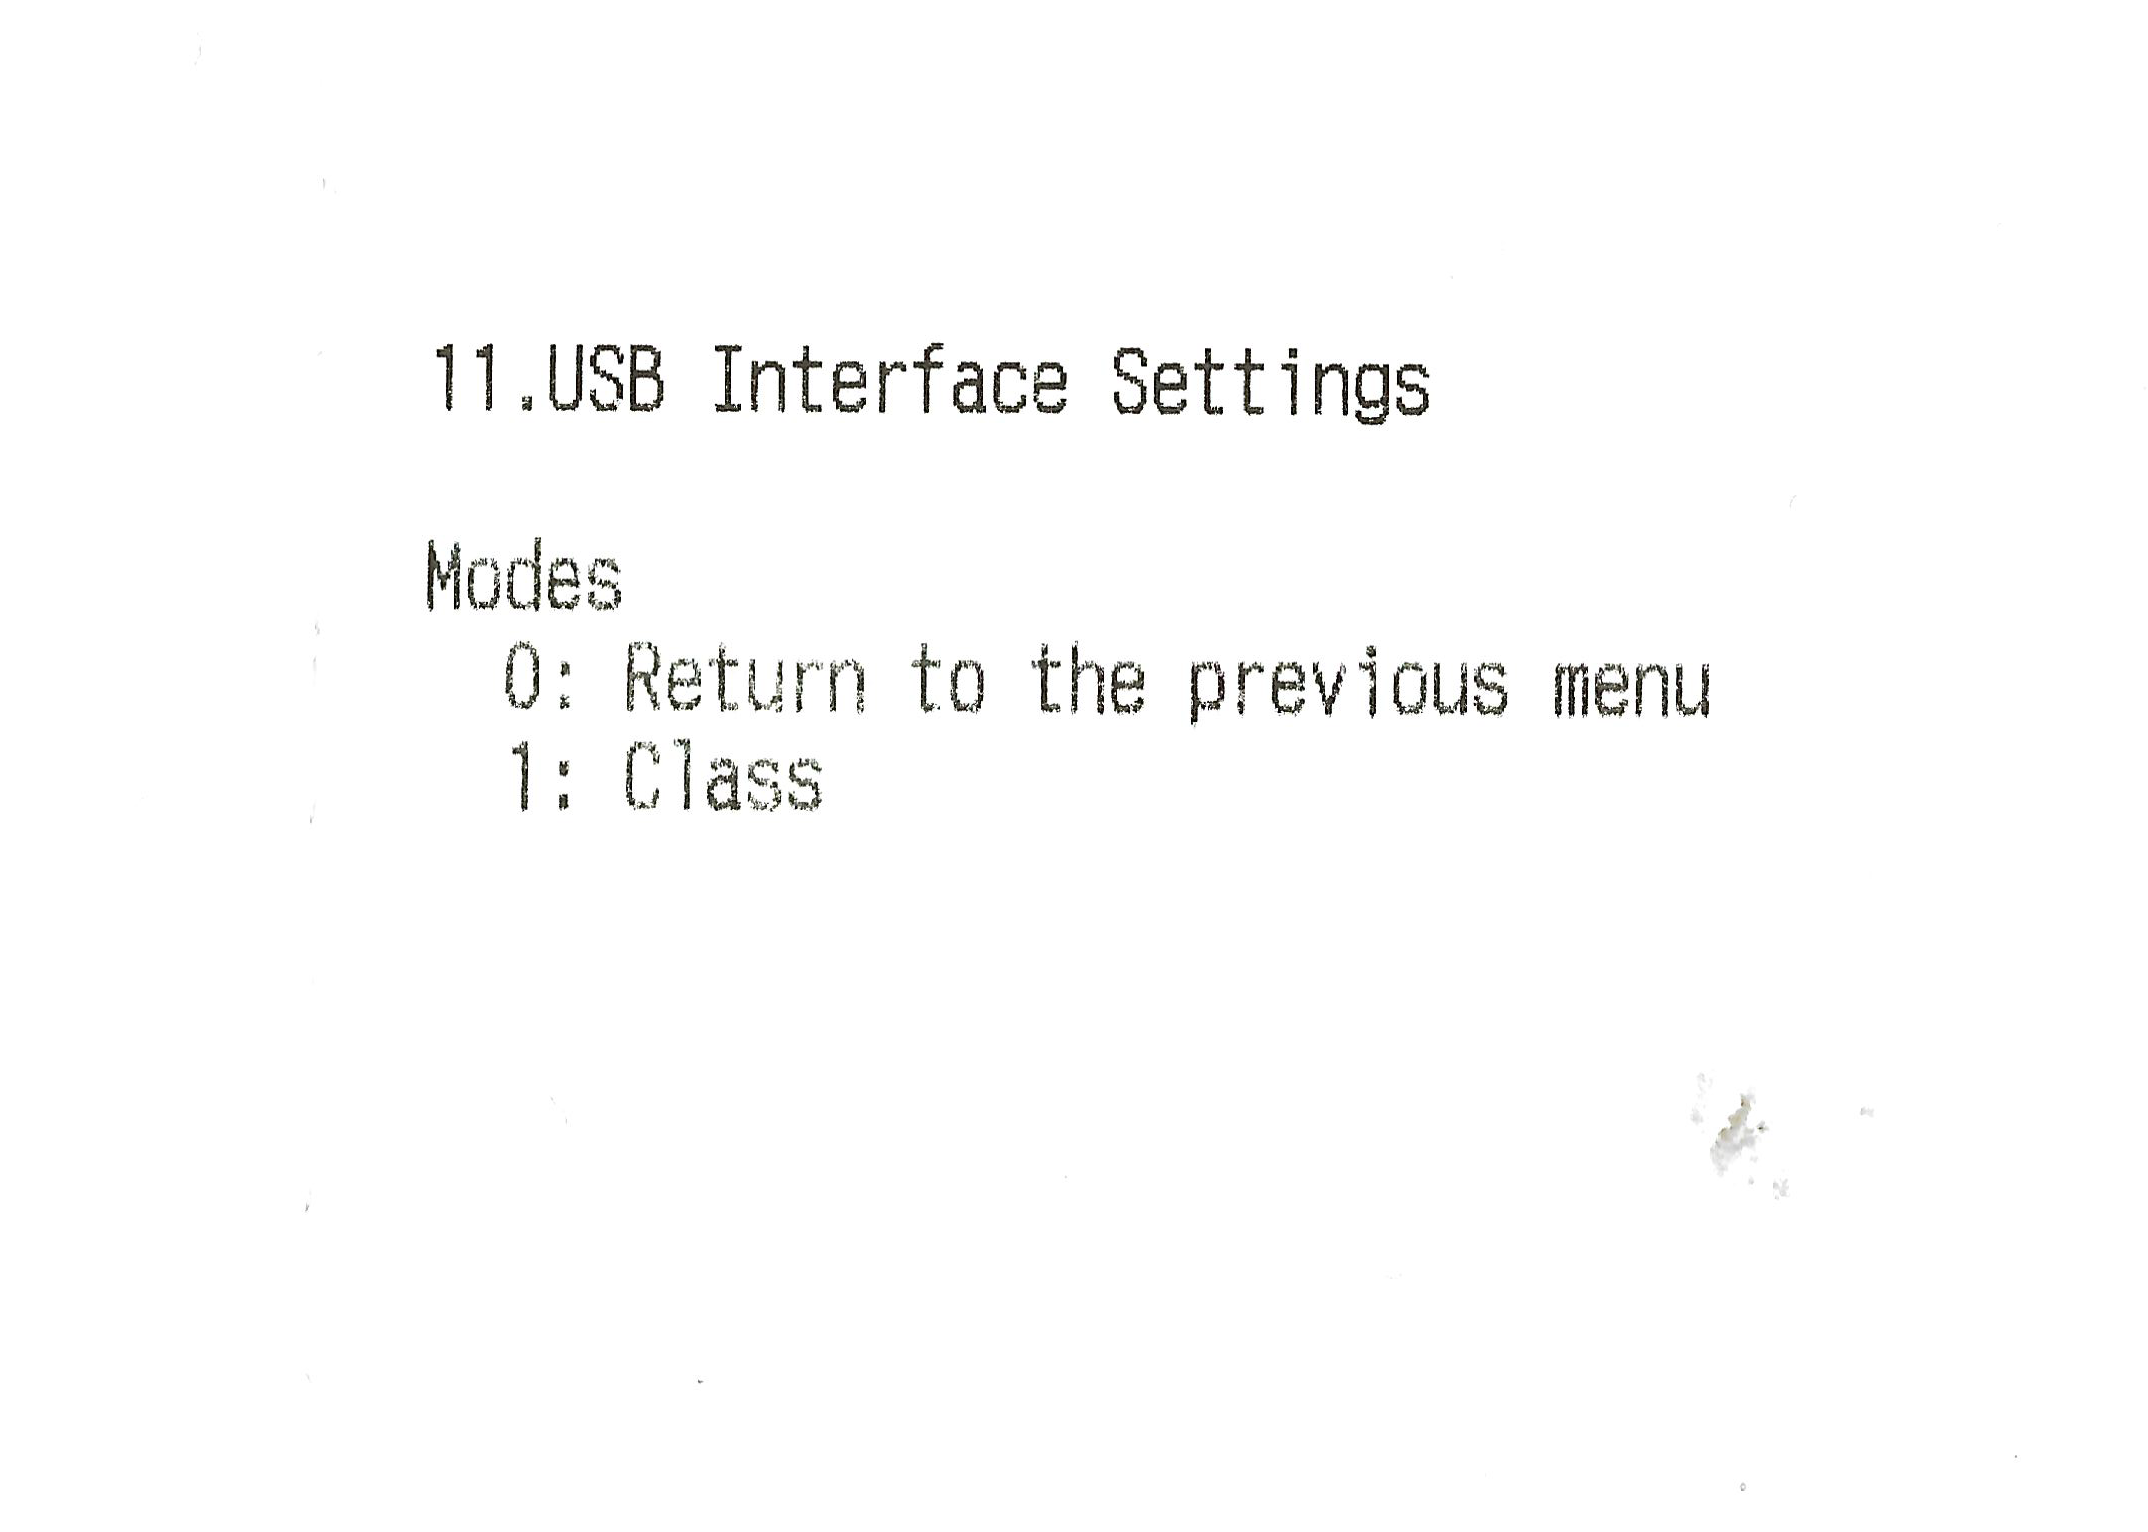 USB_Interface_settings.png